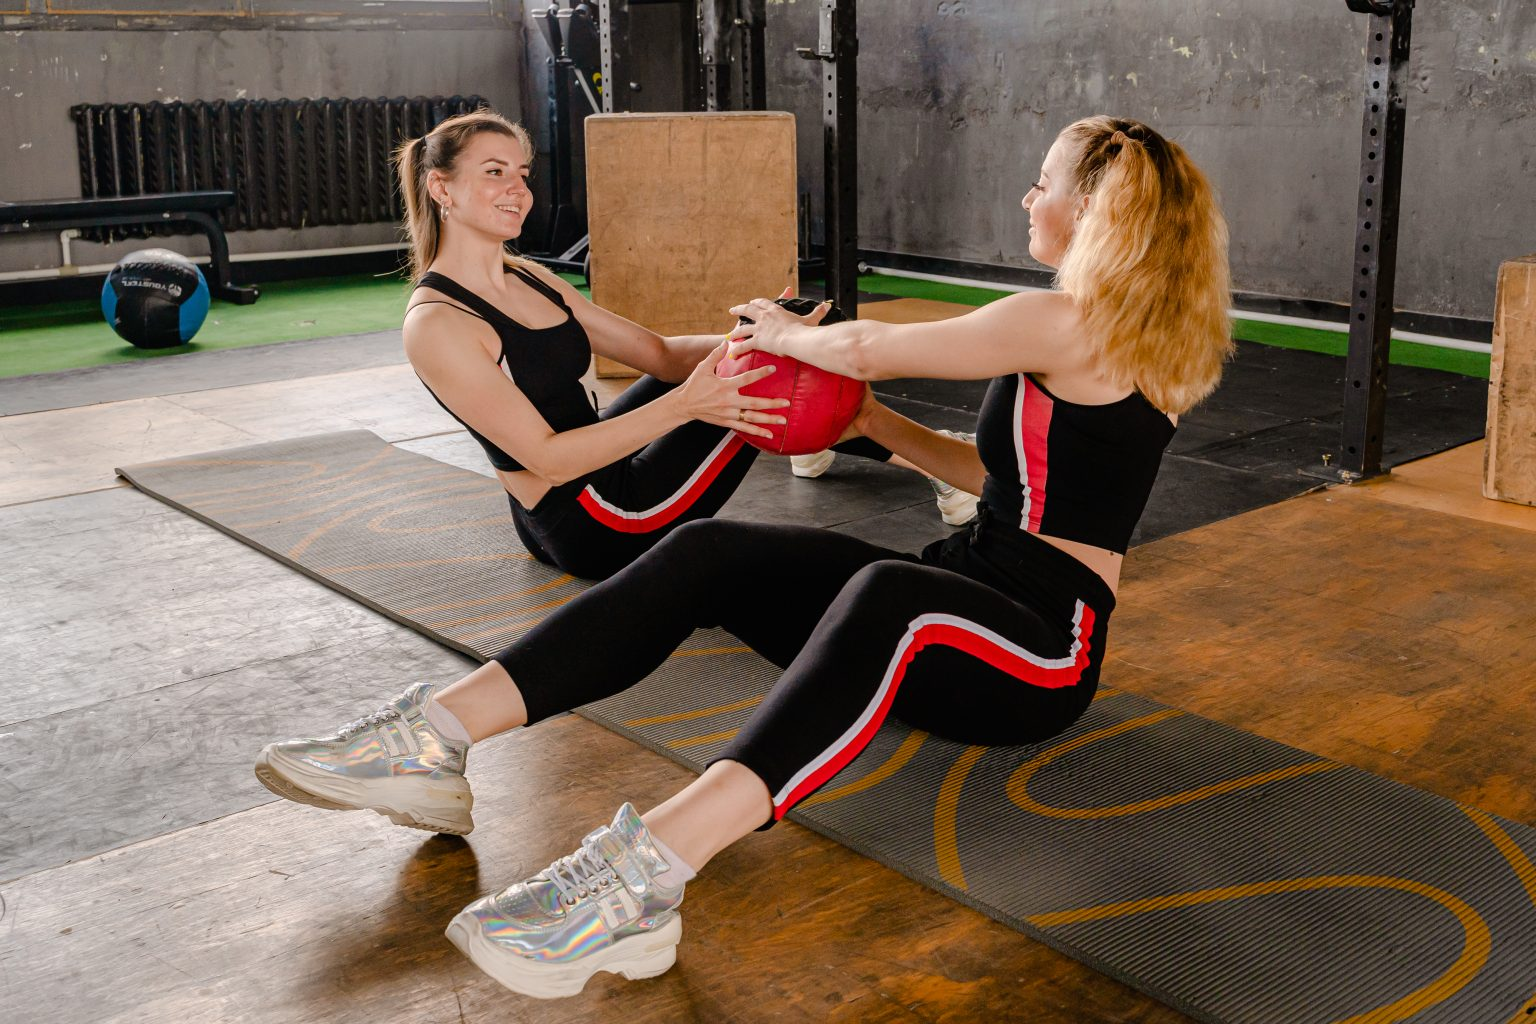 Photo of women sitting on floor while holding an exercise ball